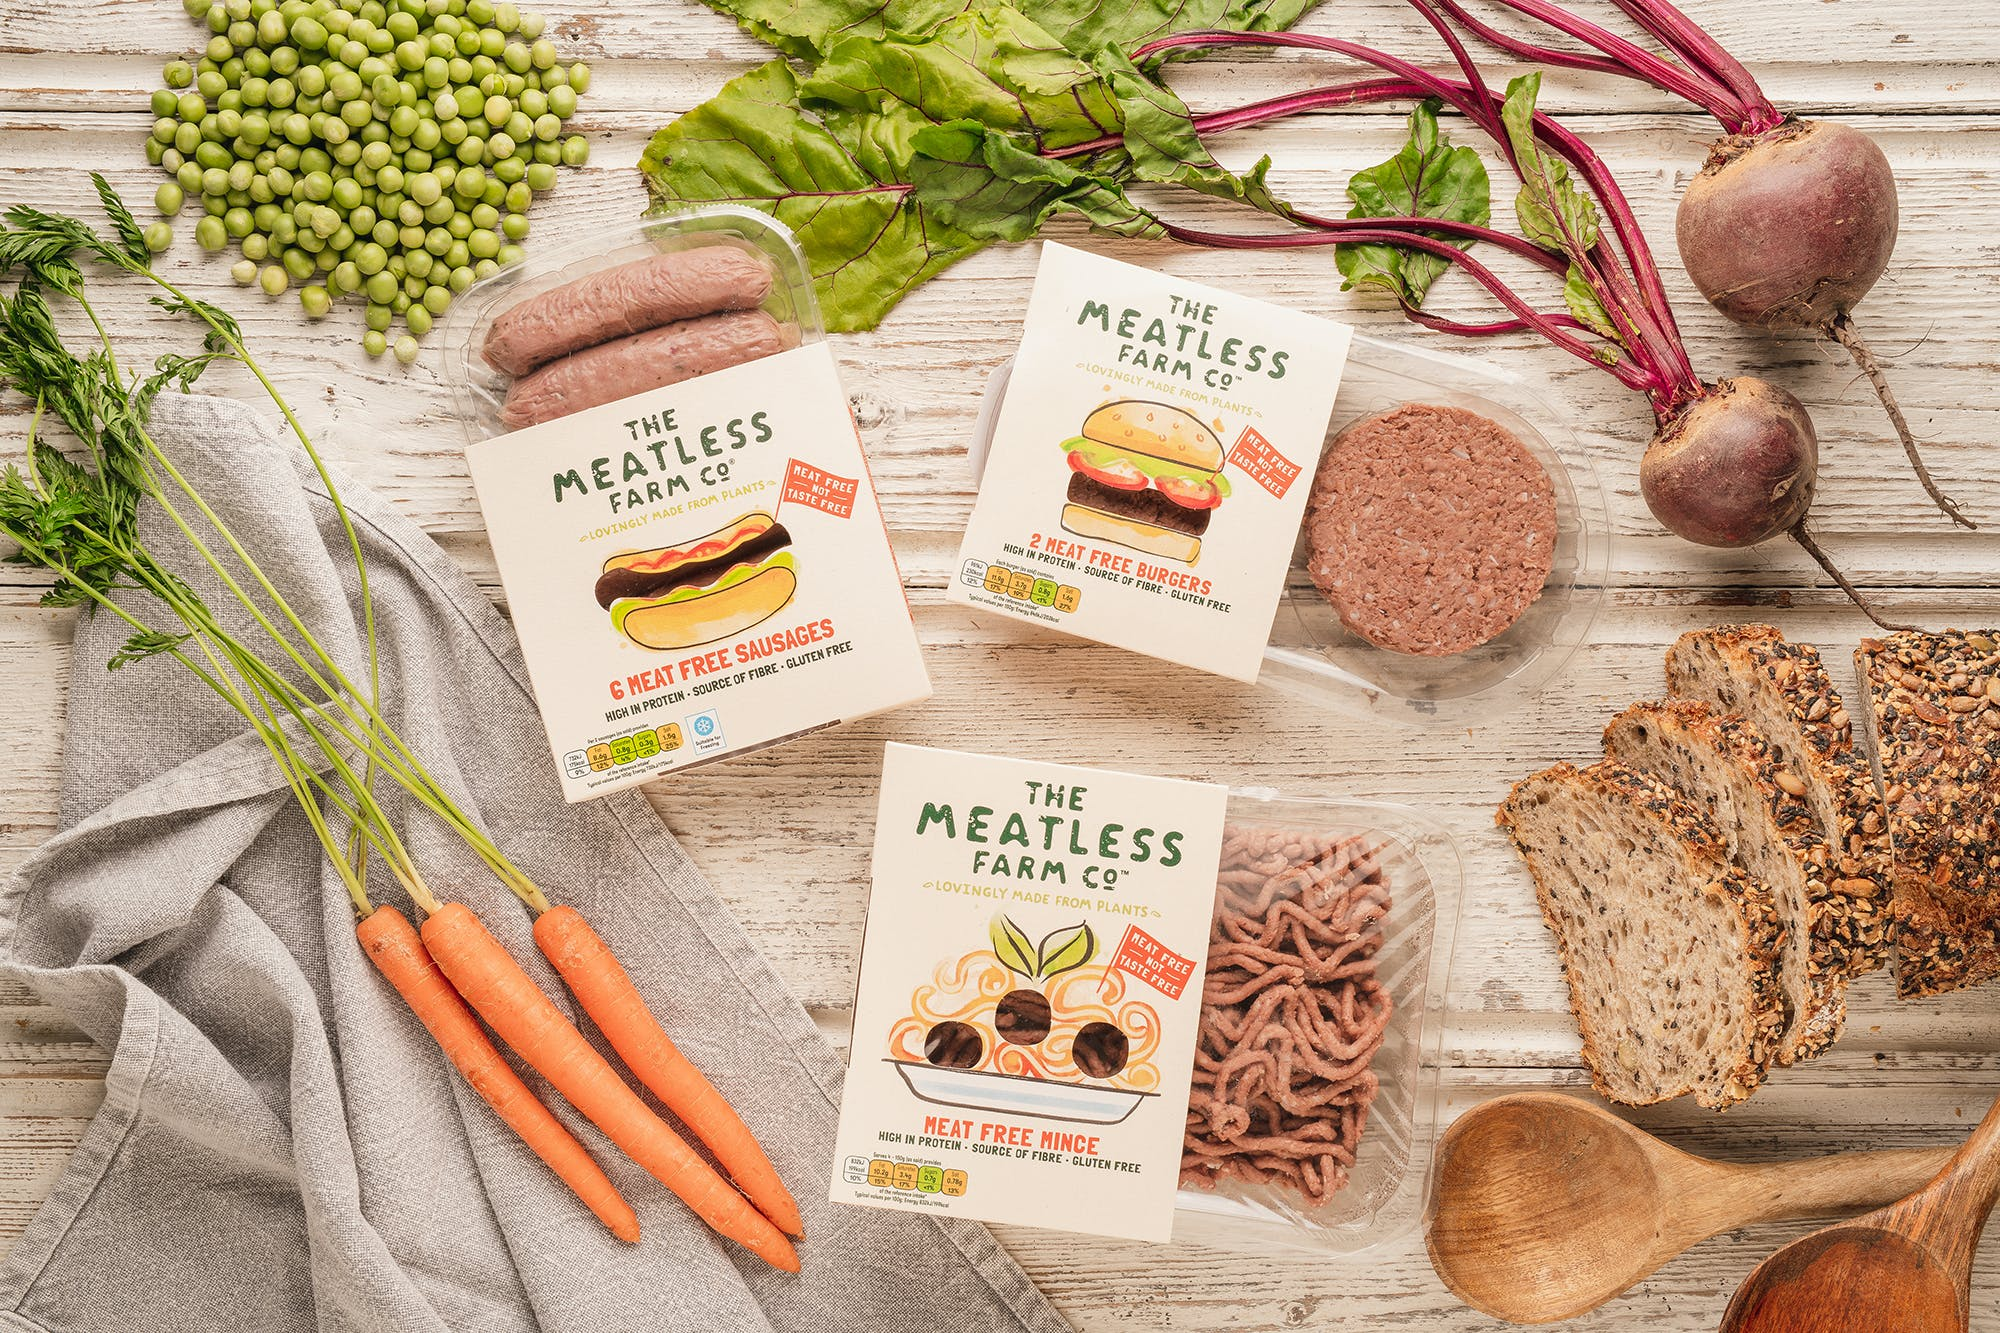 Meatless Farm turns to TV as it looks to boost growth